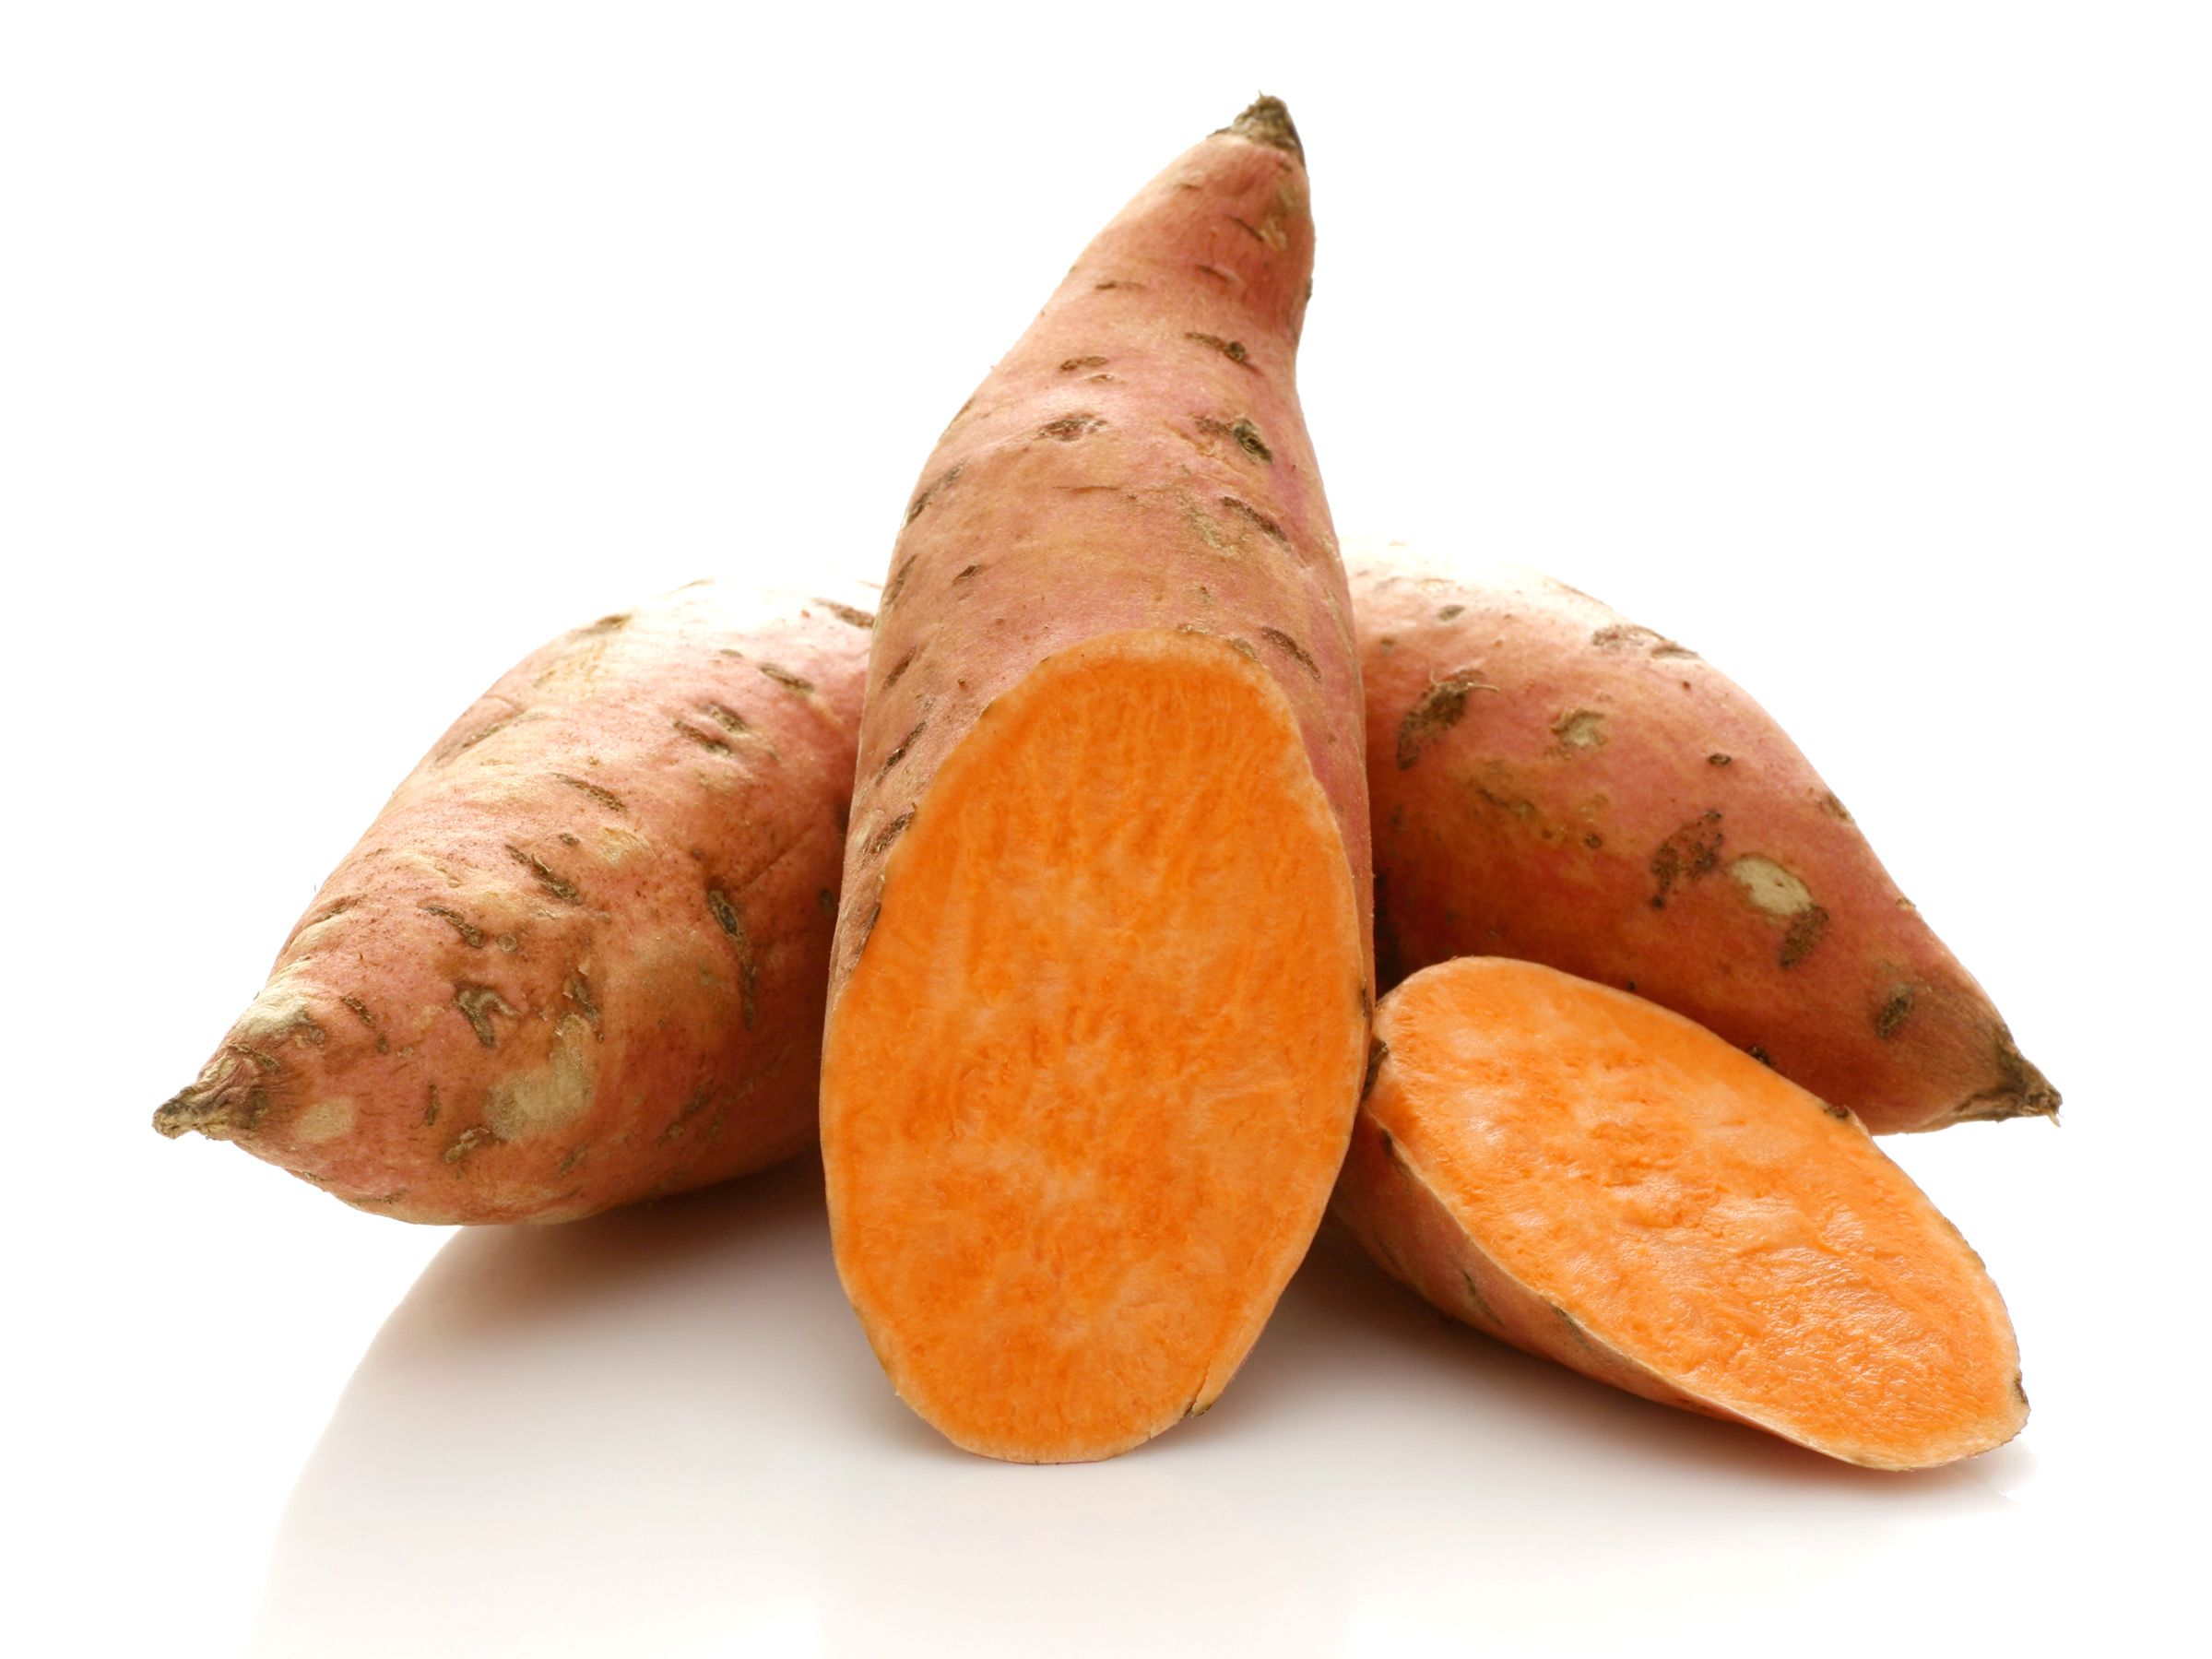 How to Select, Store and Use Sweet Potatoes